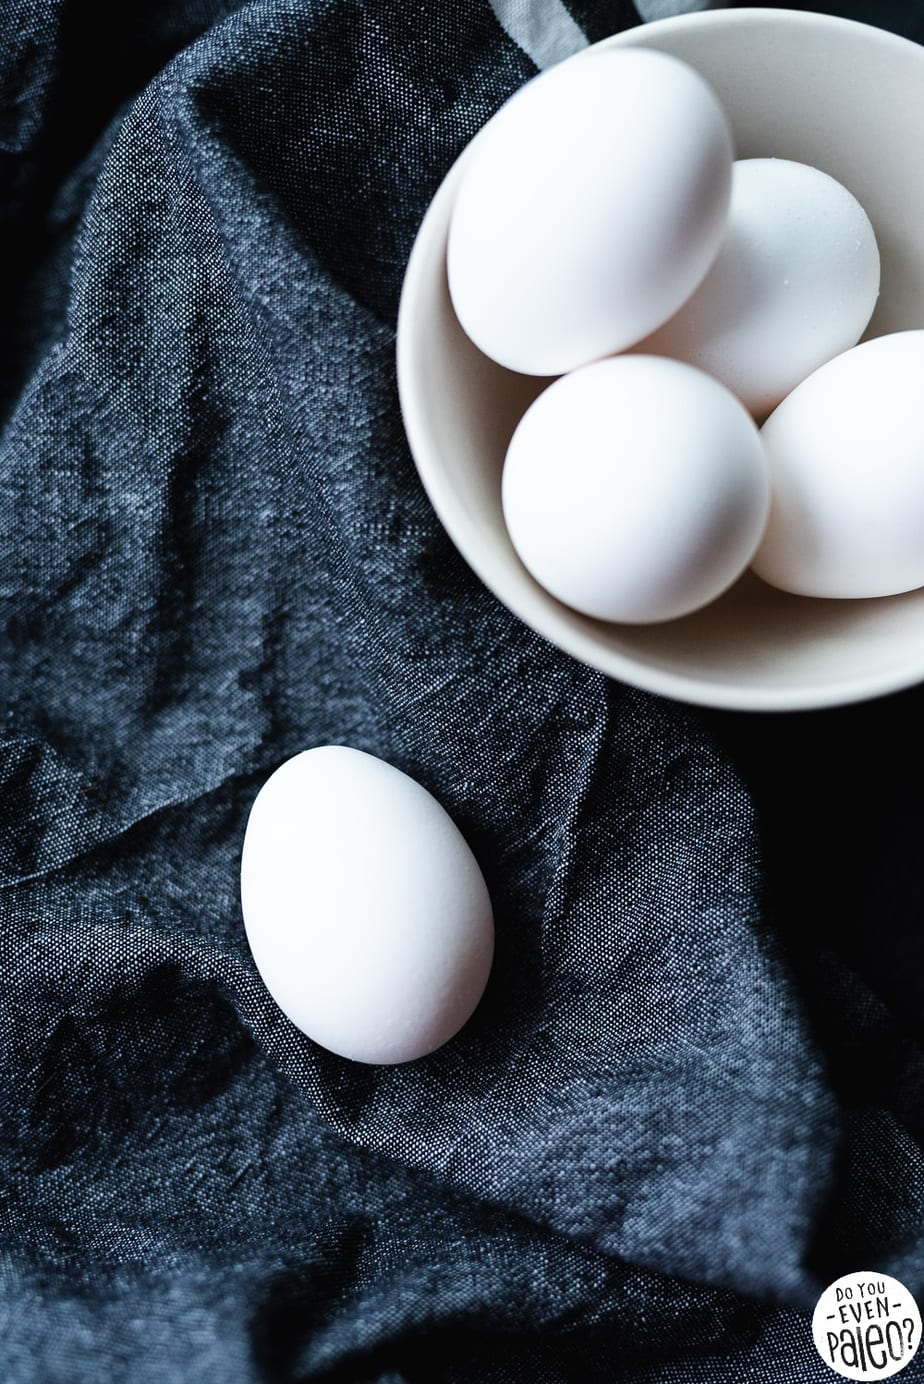 White eggs in a dish with a single egg on dark linens by DoYouEvenPaleo.net